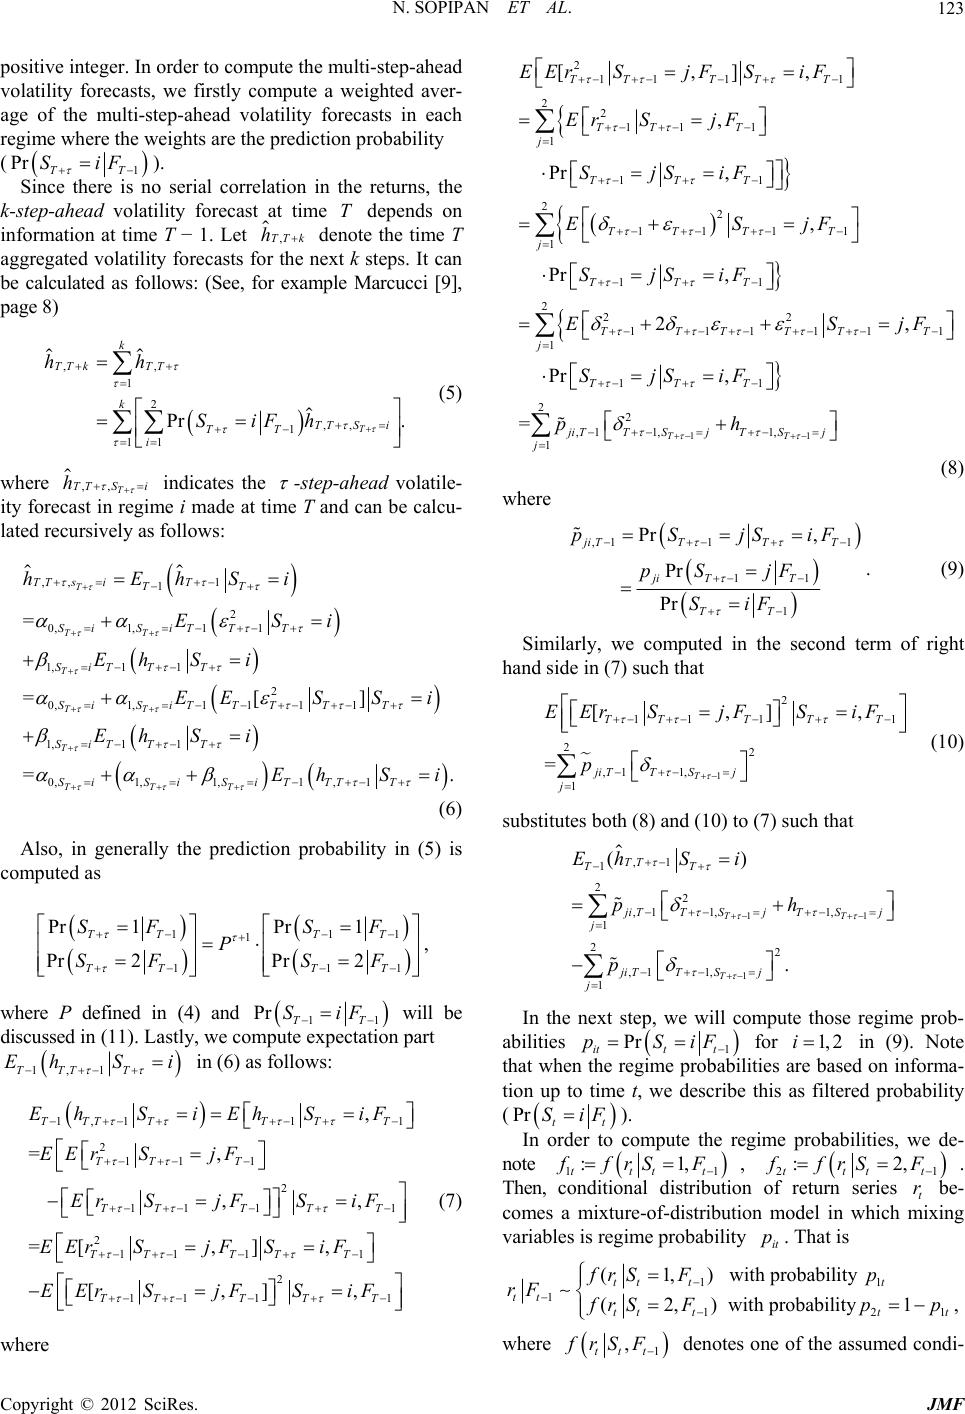 Modelling volatility of cryptocurrencies using markov-switching t garch models